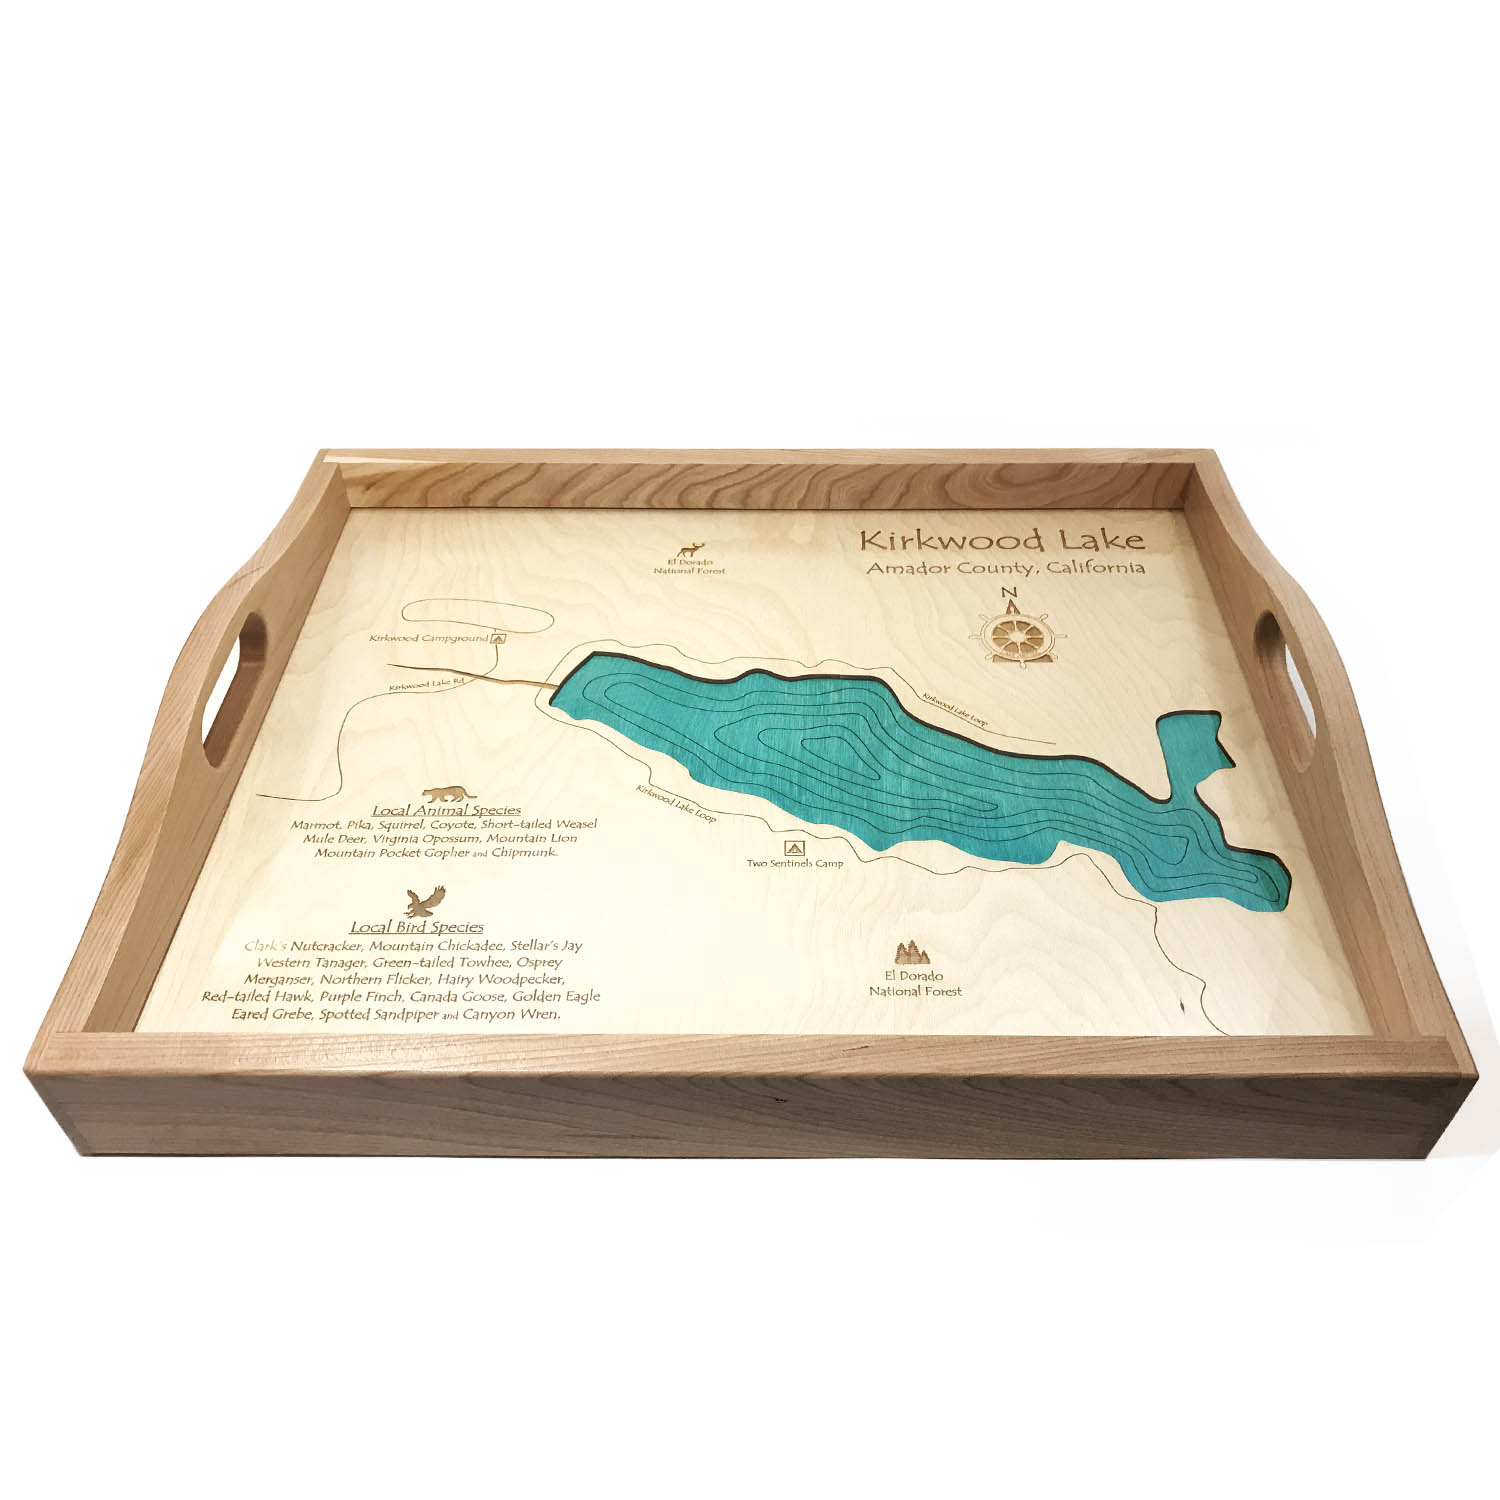 Kirkwood Lake Wood Map Serving Tray